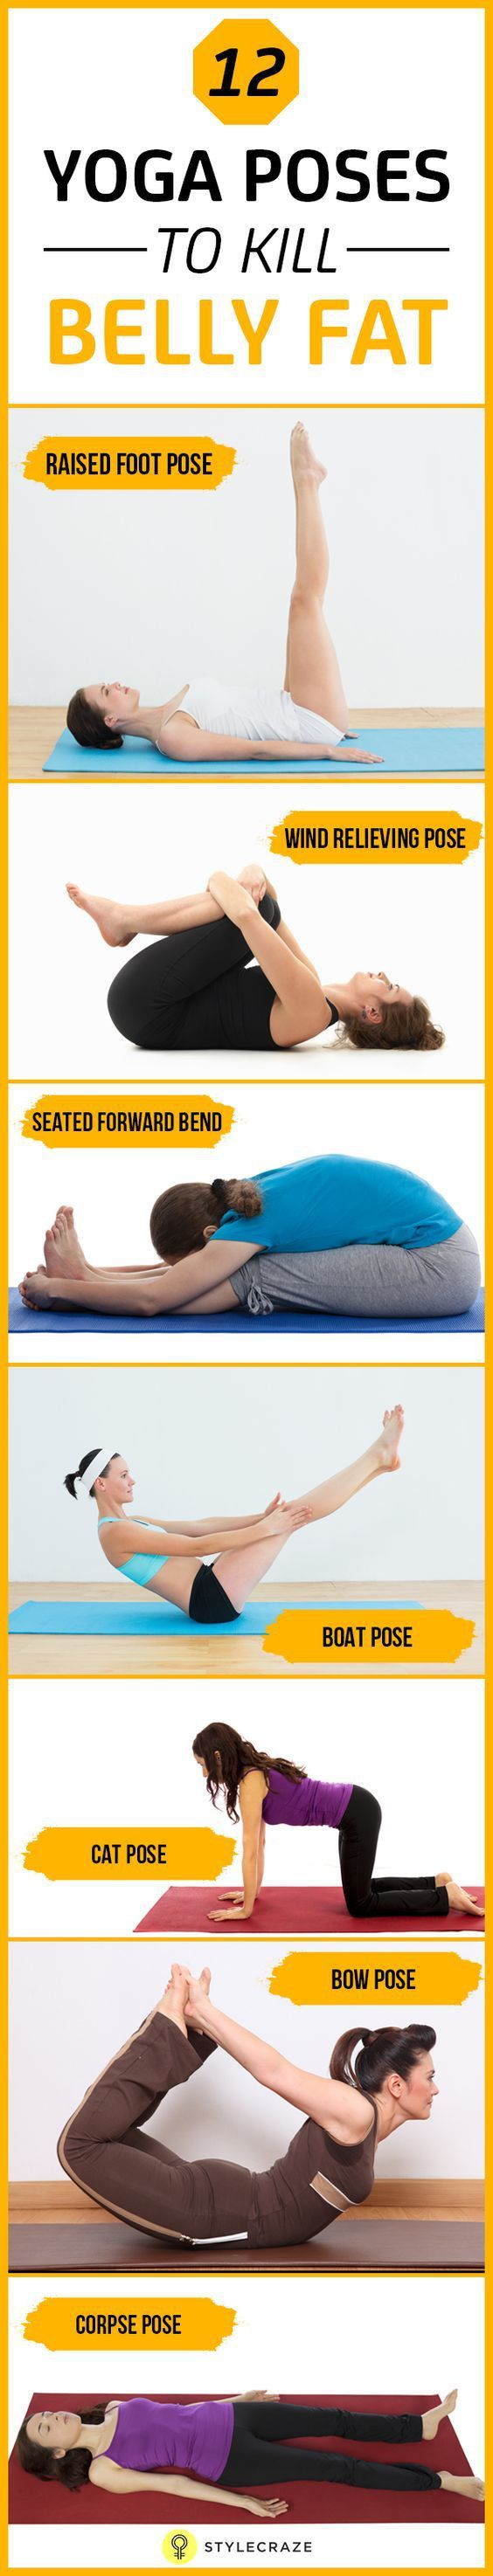 best daily exercises images on pinterest exercise routines